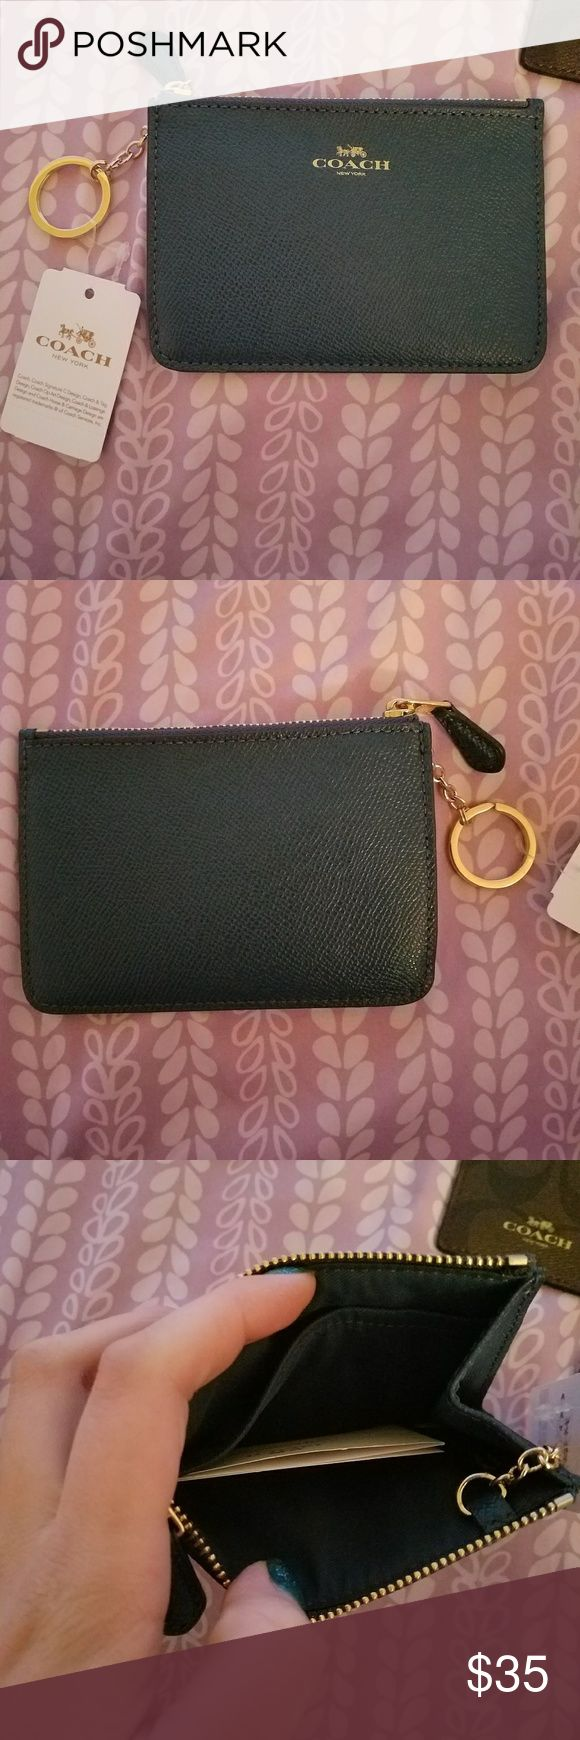 coach coin purse outlet 14iu  Coach Coin Purse 100% Authentic Coach Leather Blue coin purse BRAND NEW  FROM COACH